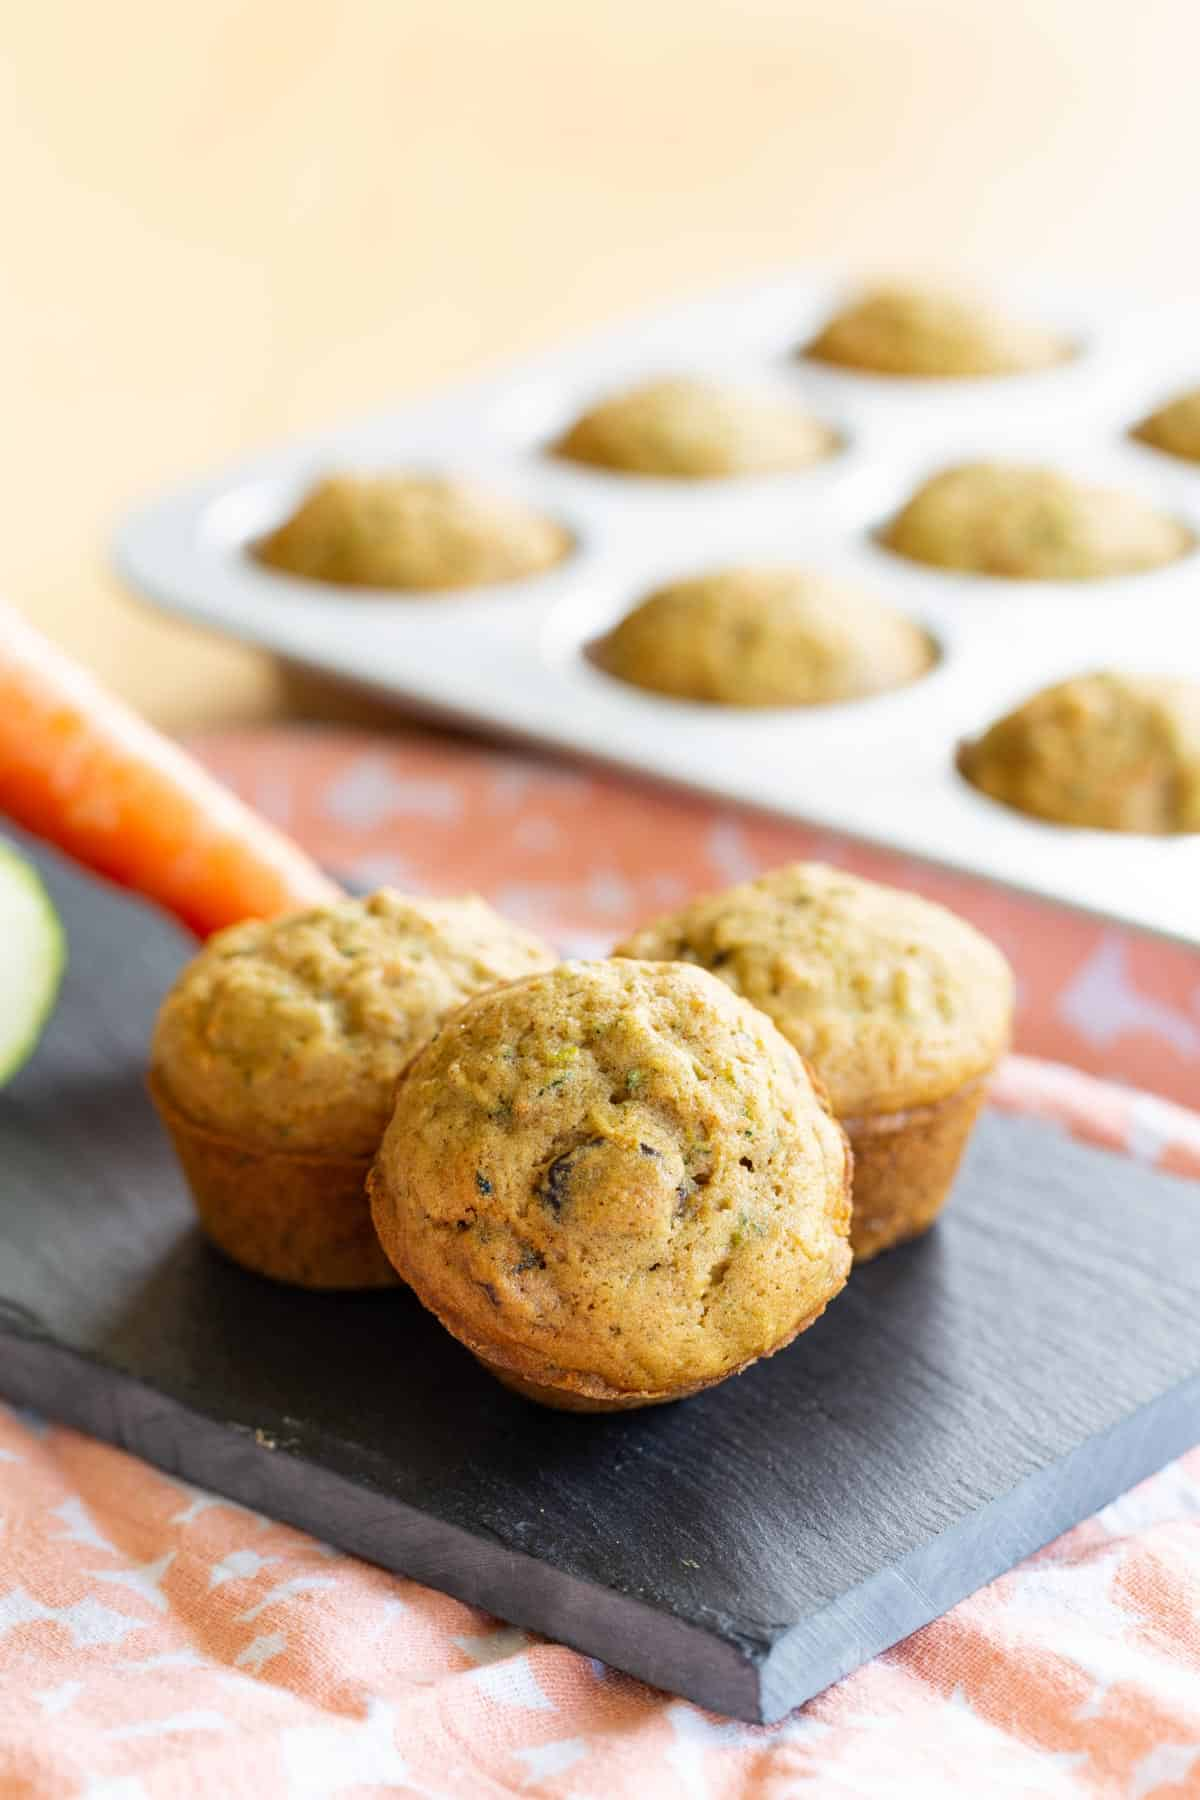 three gluten free carrot zucchini muffins on a platter with one leaning against the others